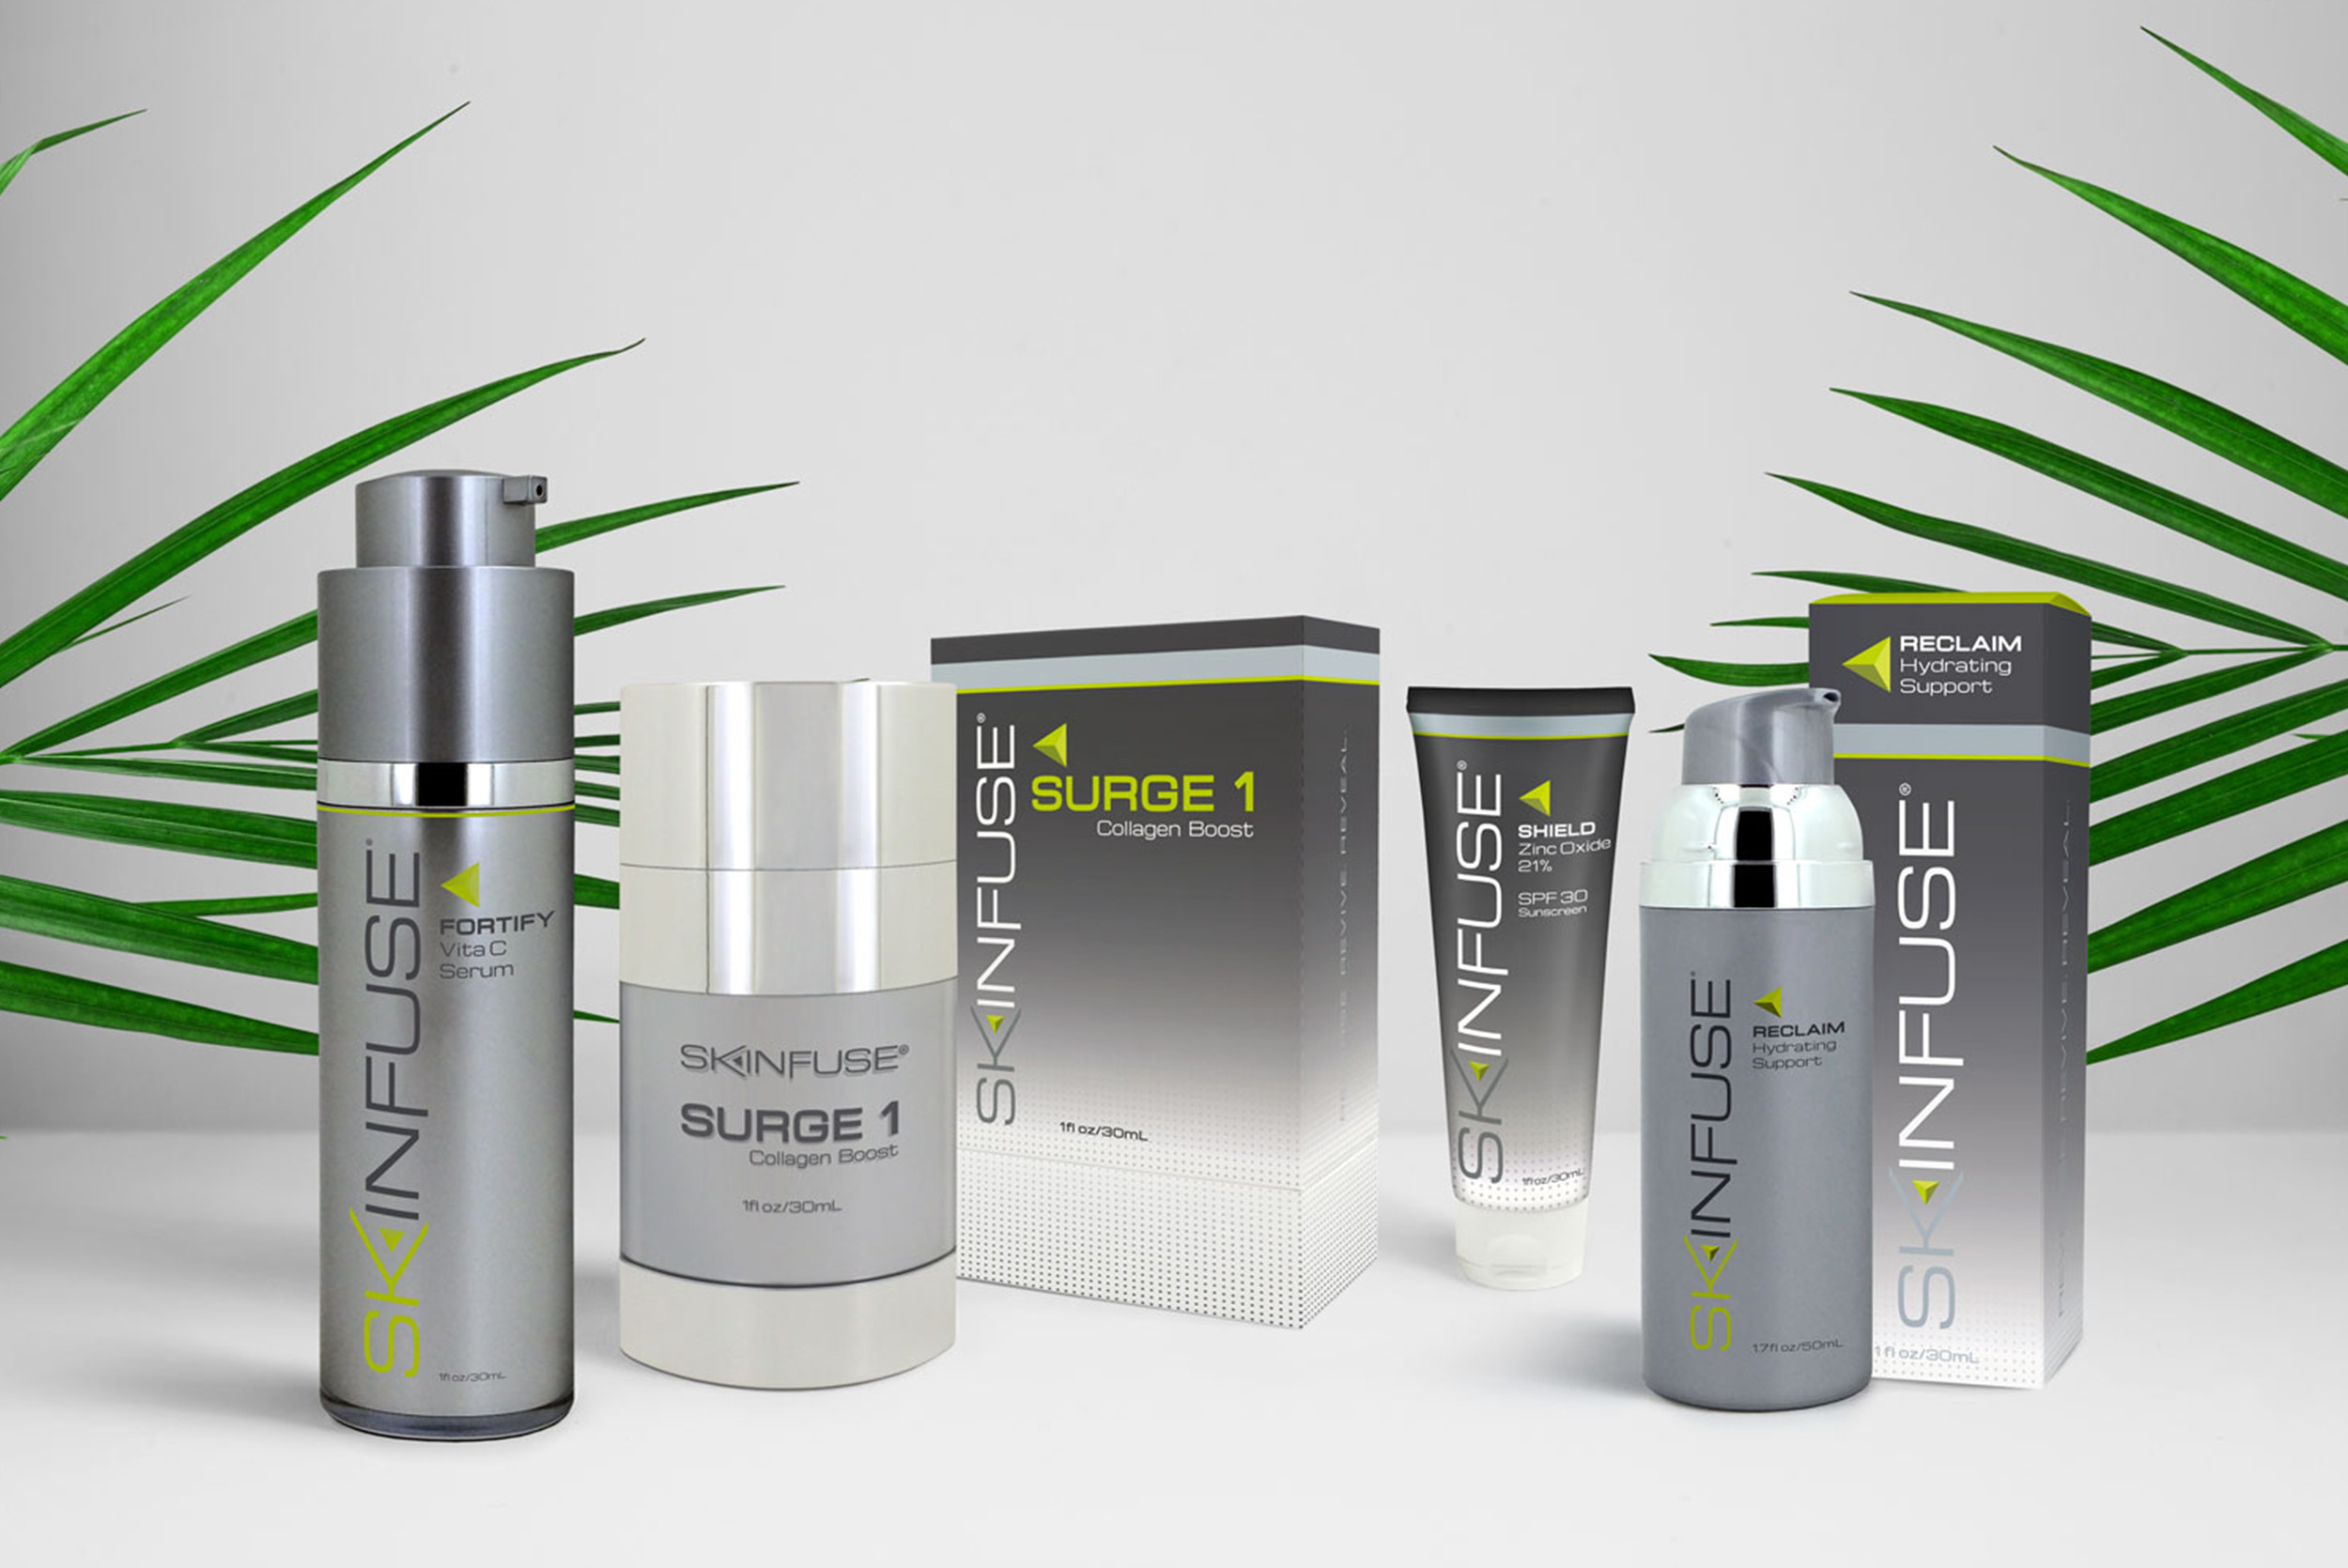 Skinfuse Skincare Package Design